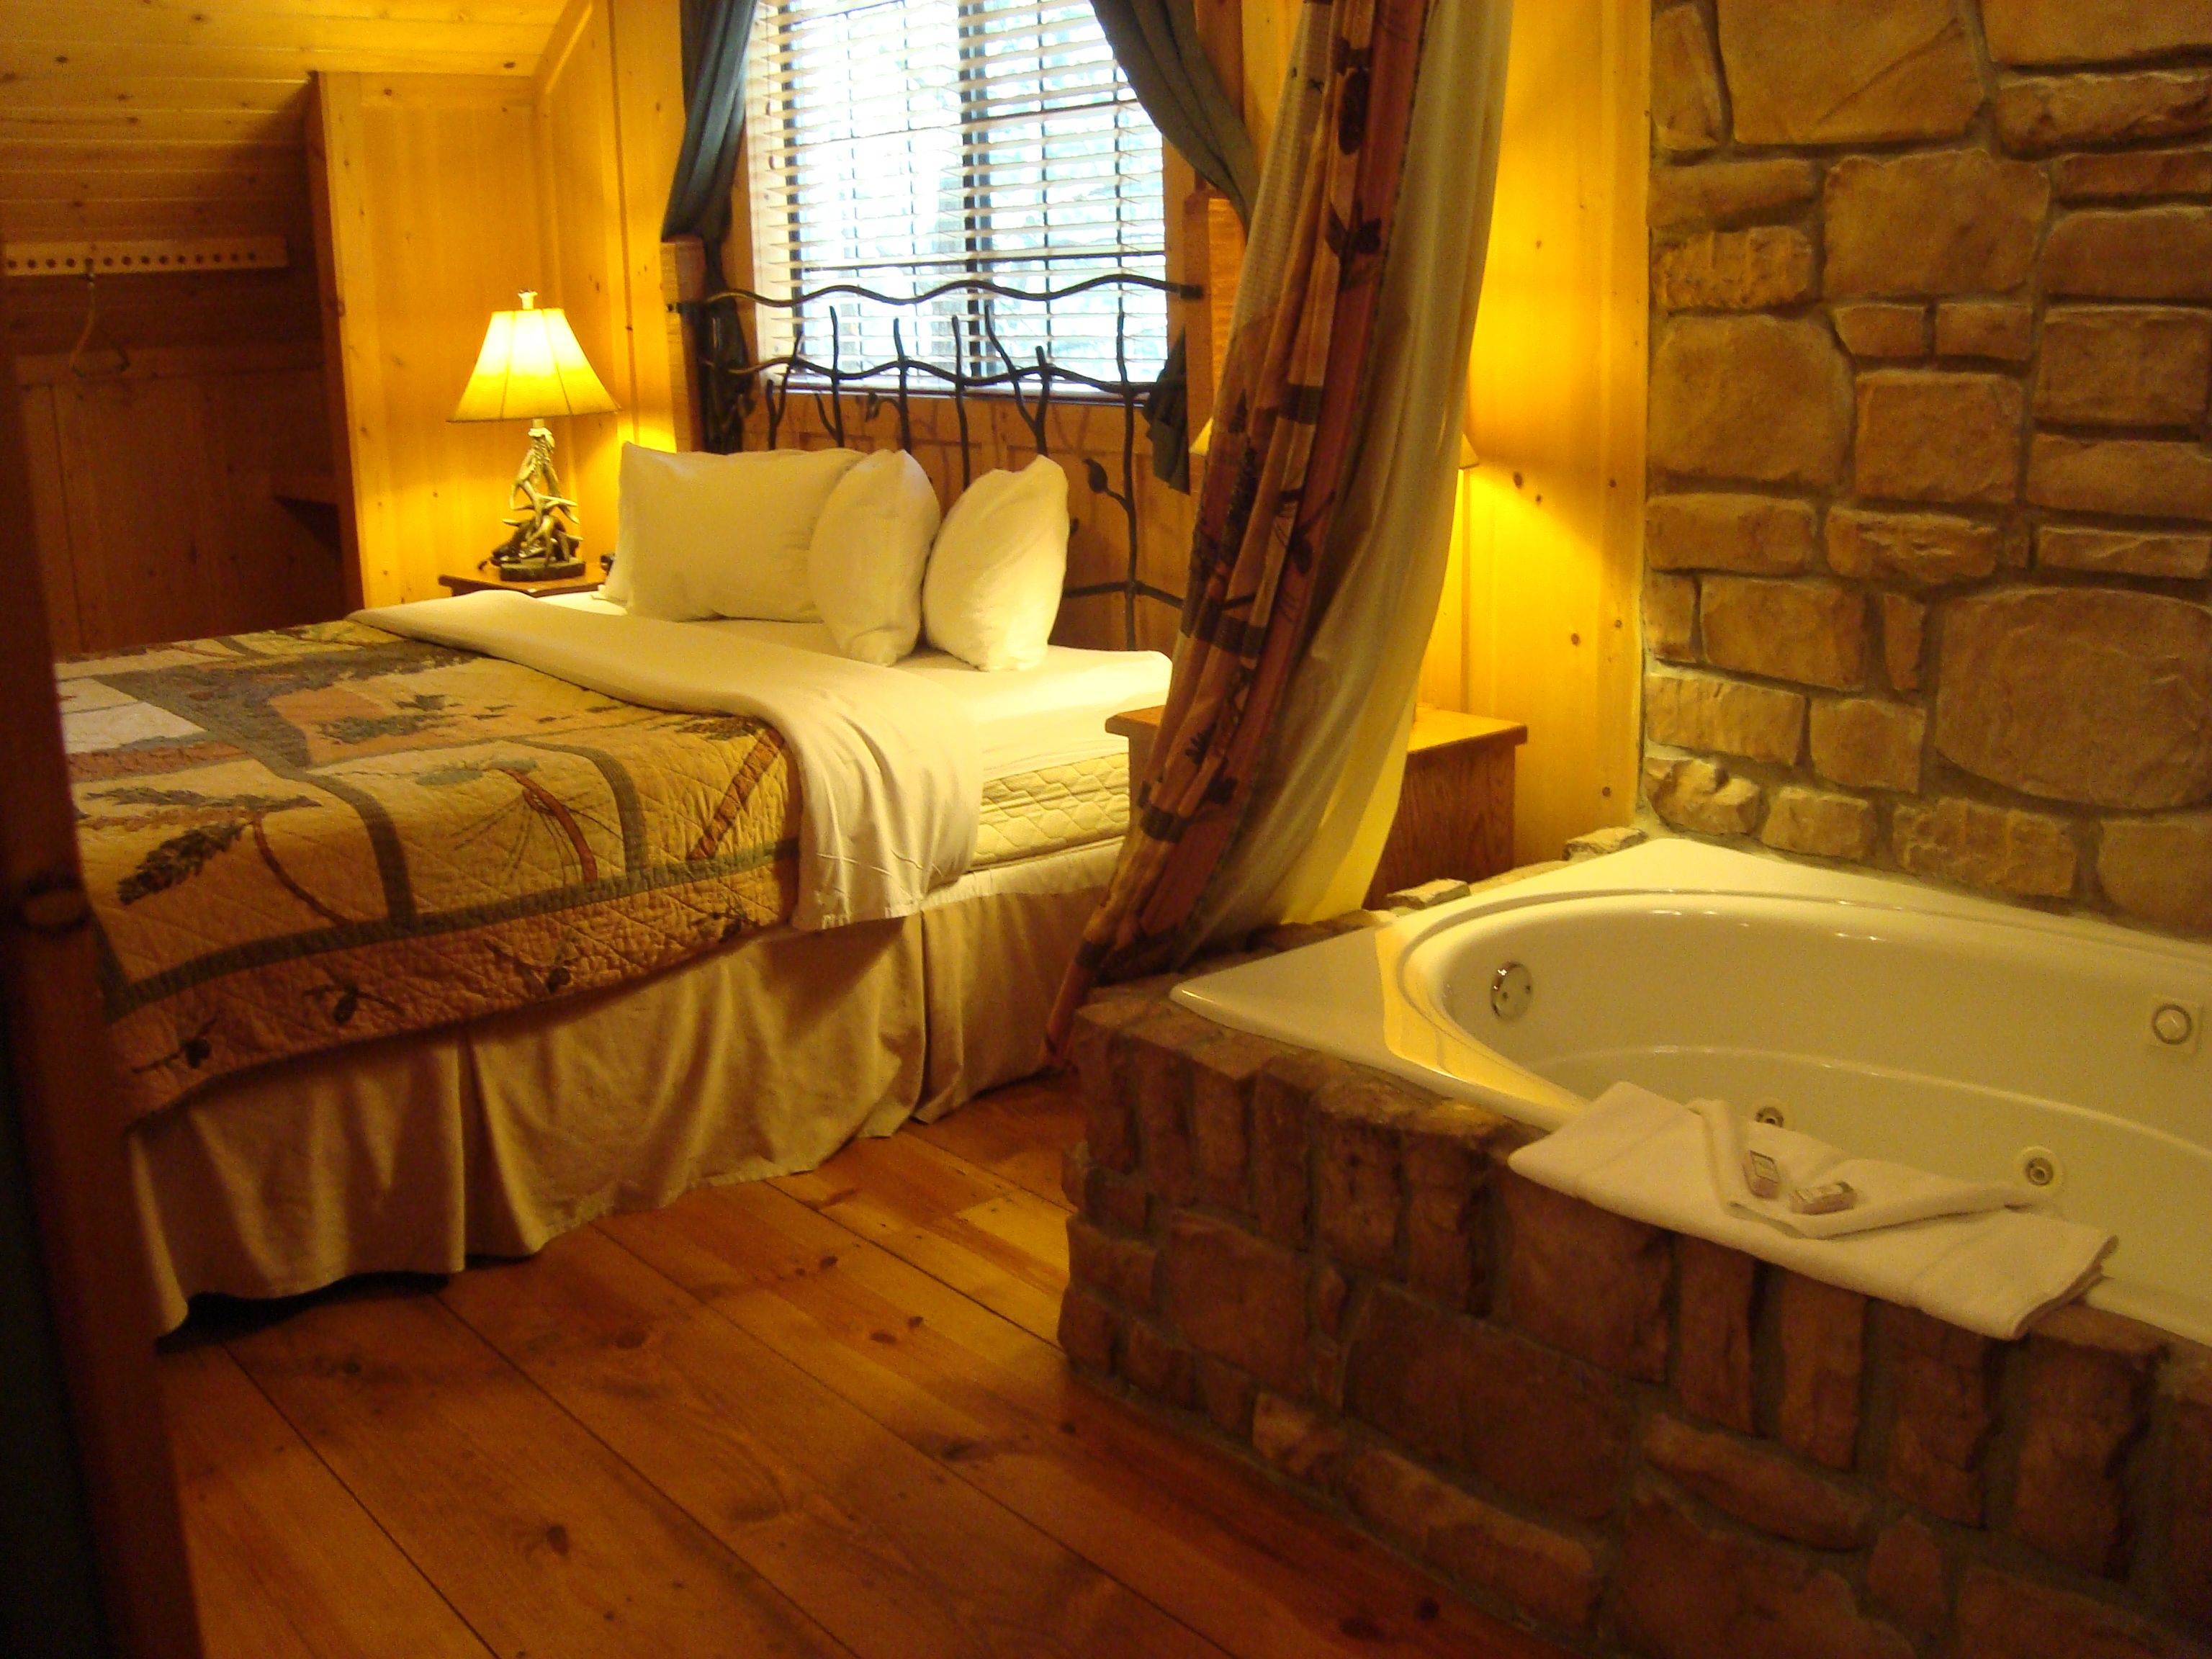 Green mountain resort branson missouri master bedroom w jacuzzi tub places i 39 ve been Jacuzzi tub in master bedroom